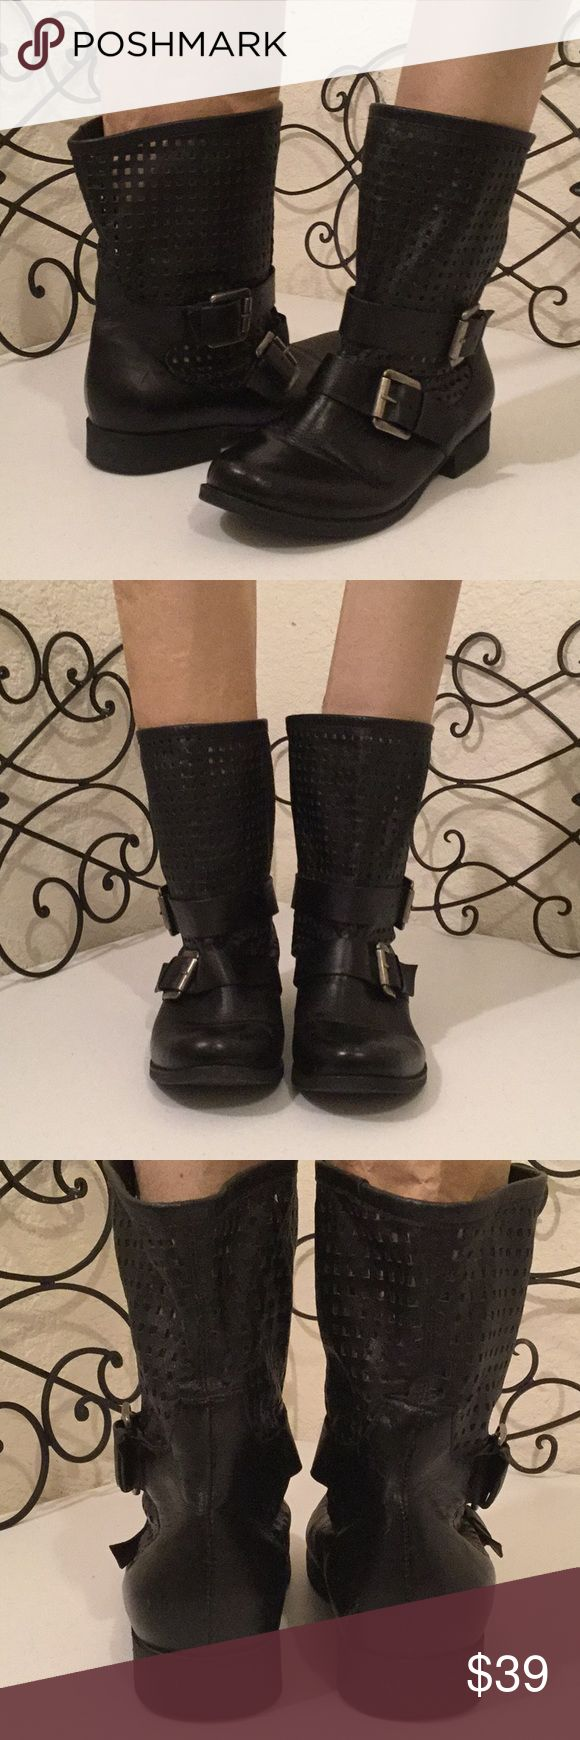 """STEVE MADDEN Lattice Leather Moto Buckled Boots VERY GOOD CONDITION. Medium weight midcalf moto combat boots with lattice shaft 7"""" from bottom of heel to top of shaft, 1"""" heel, two adjustable buckles. A few scuffs on toes & right heel, see photos. Please check out more of the Posh Boutique Outlet! Steve Madden Shoes Combat & Moto Boots"""